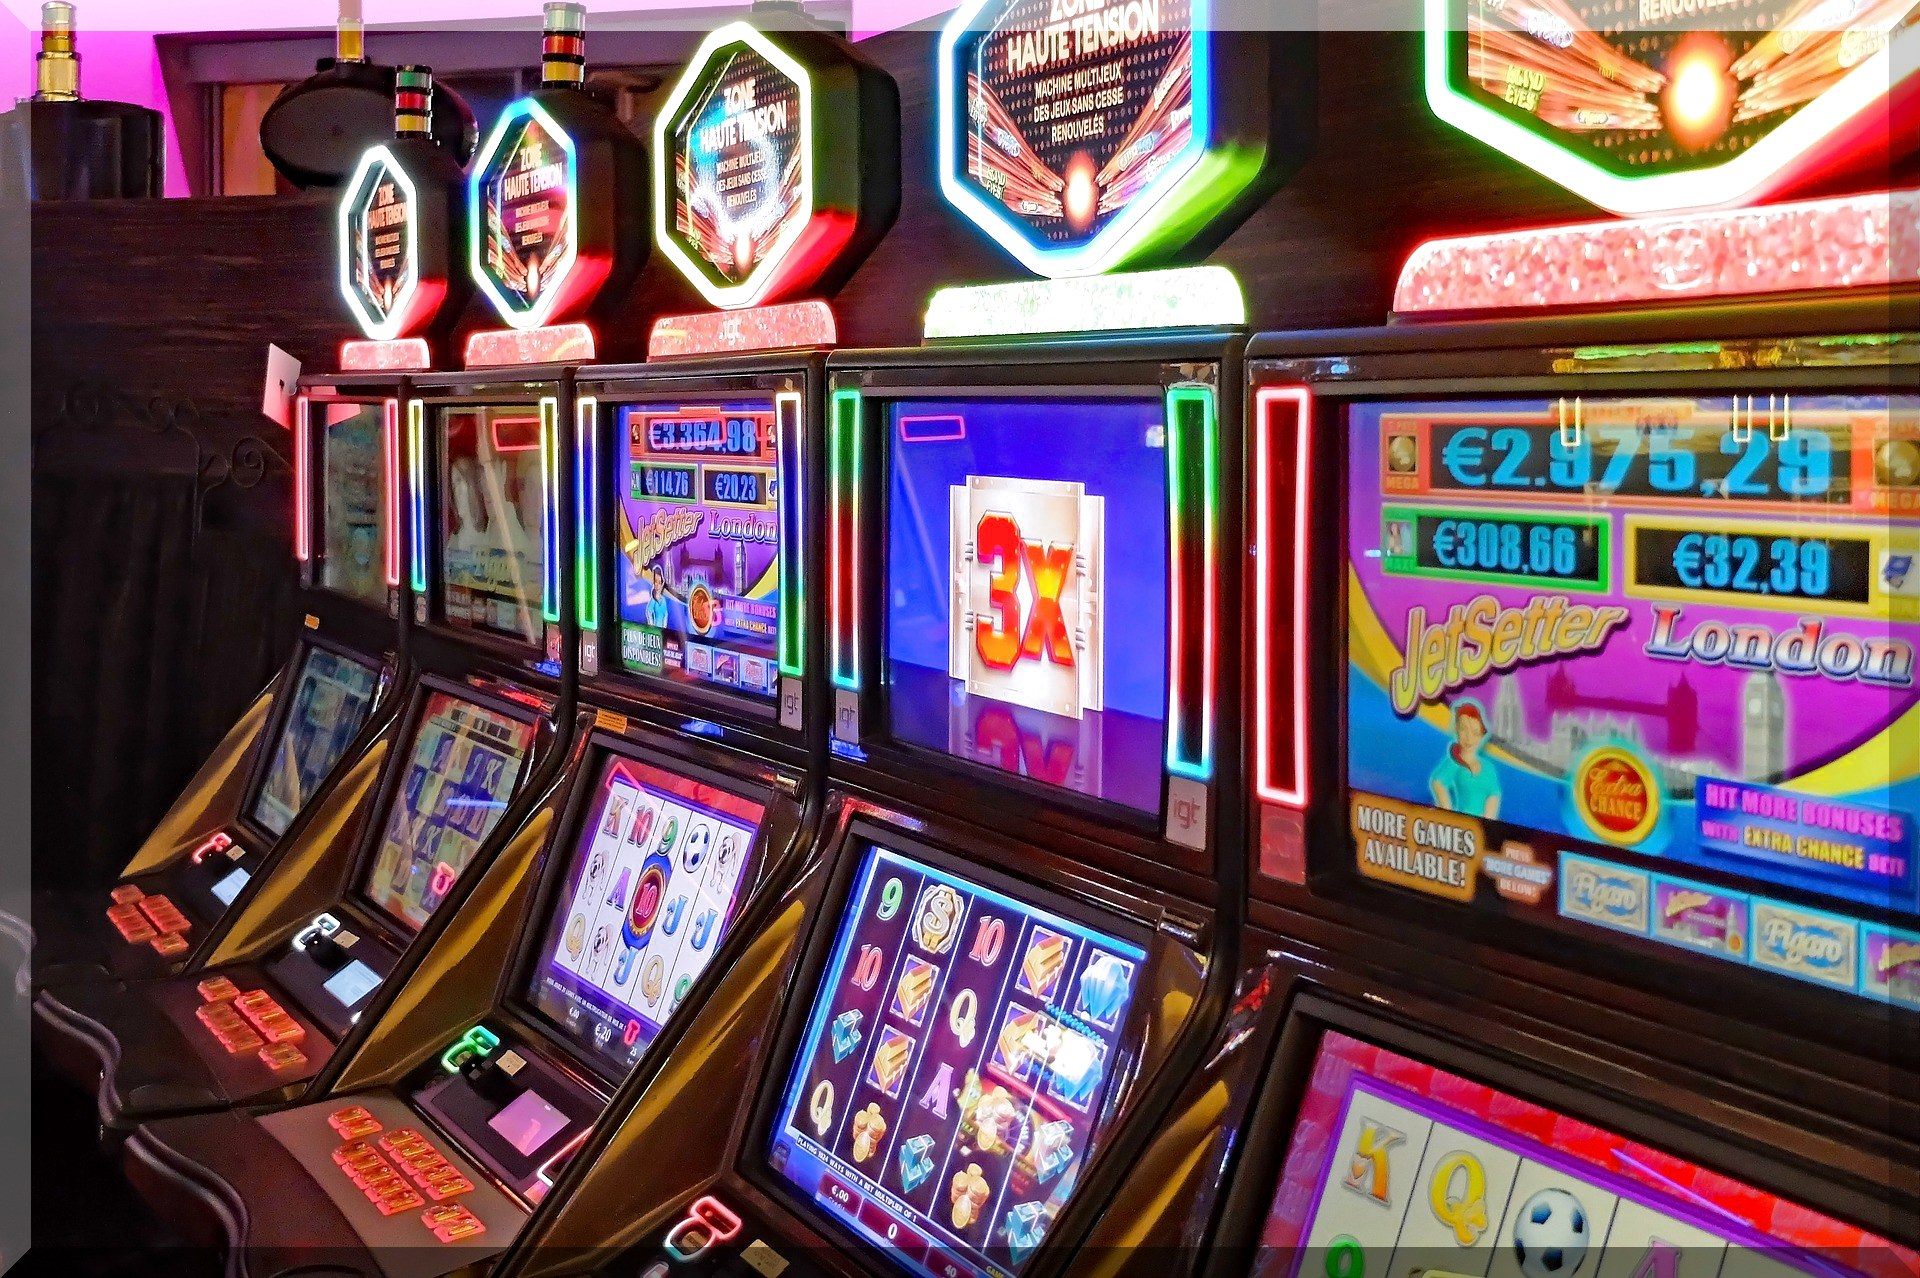 It's The Side Of Extreme Online Gambling Hardly Ever Seen